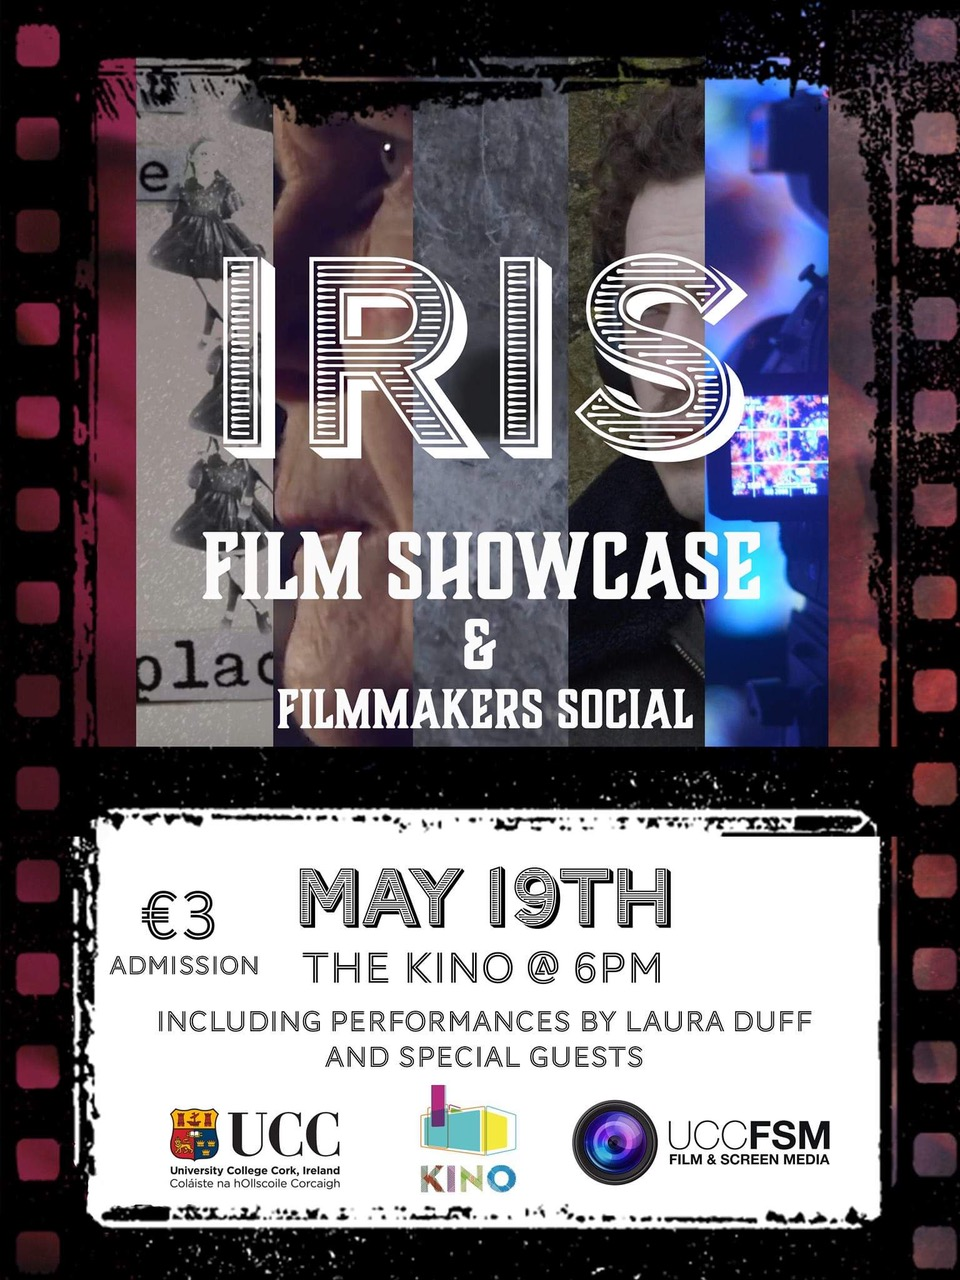 Film & Screen Media Showcase 2019. Sun 6pm, 19th May @ The Kino.